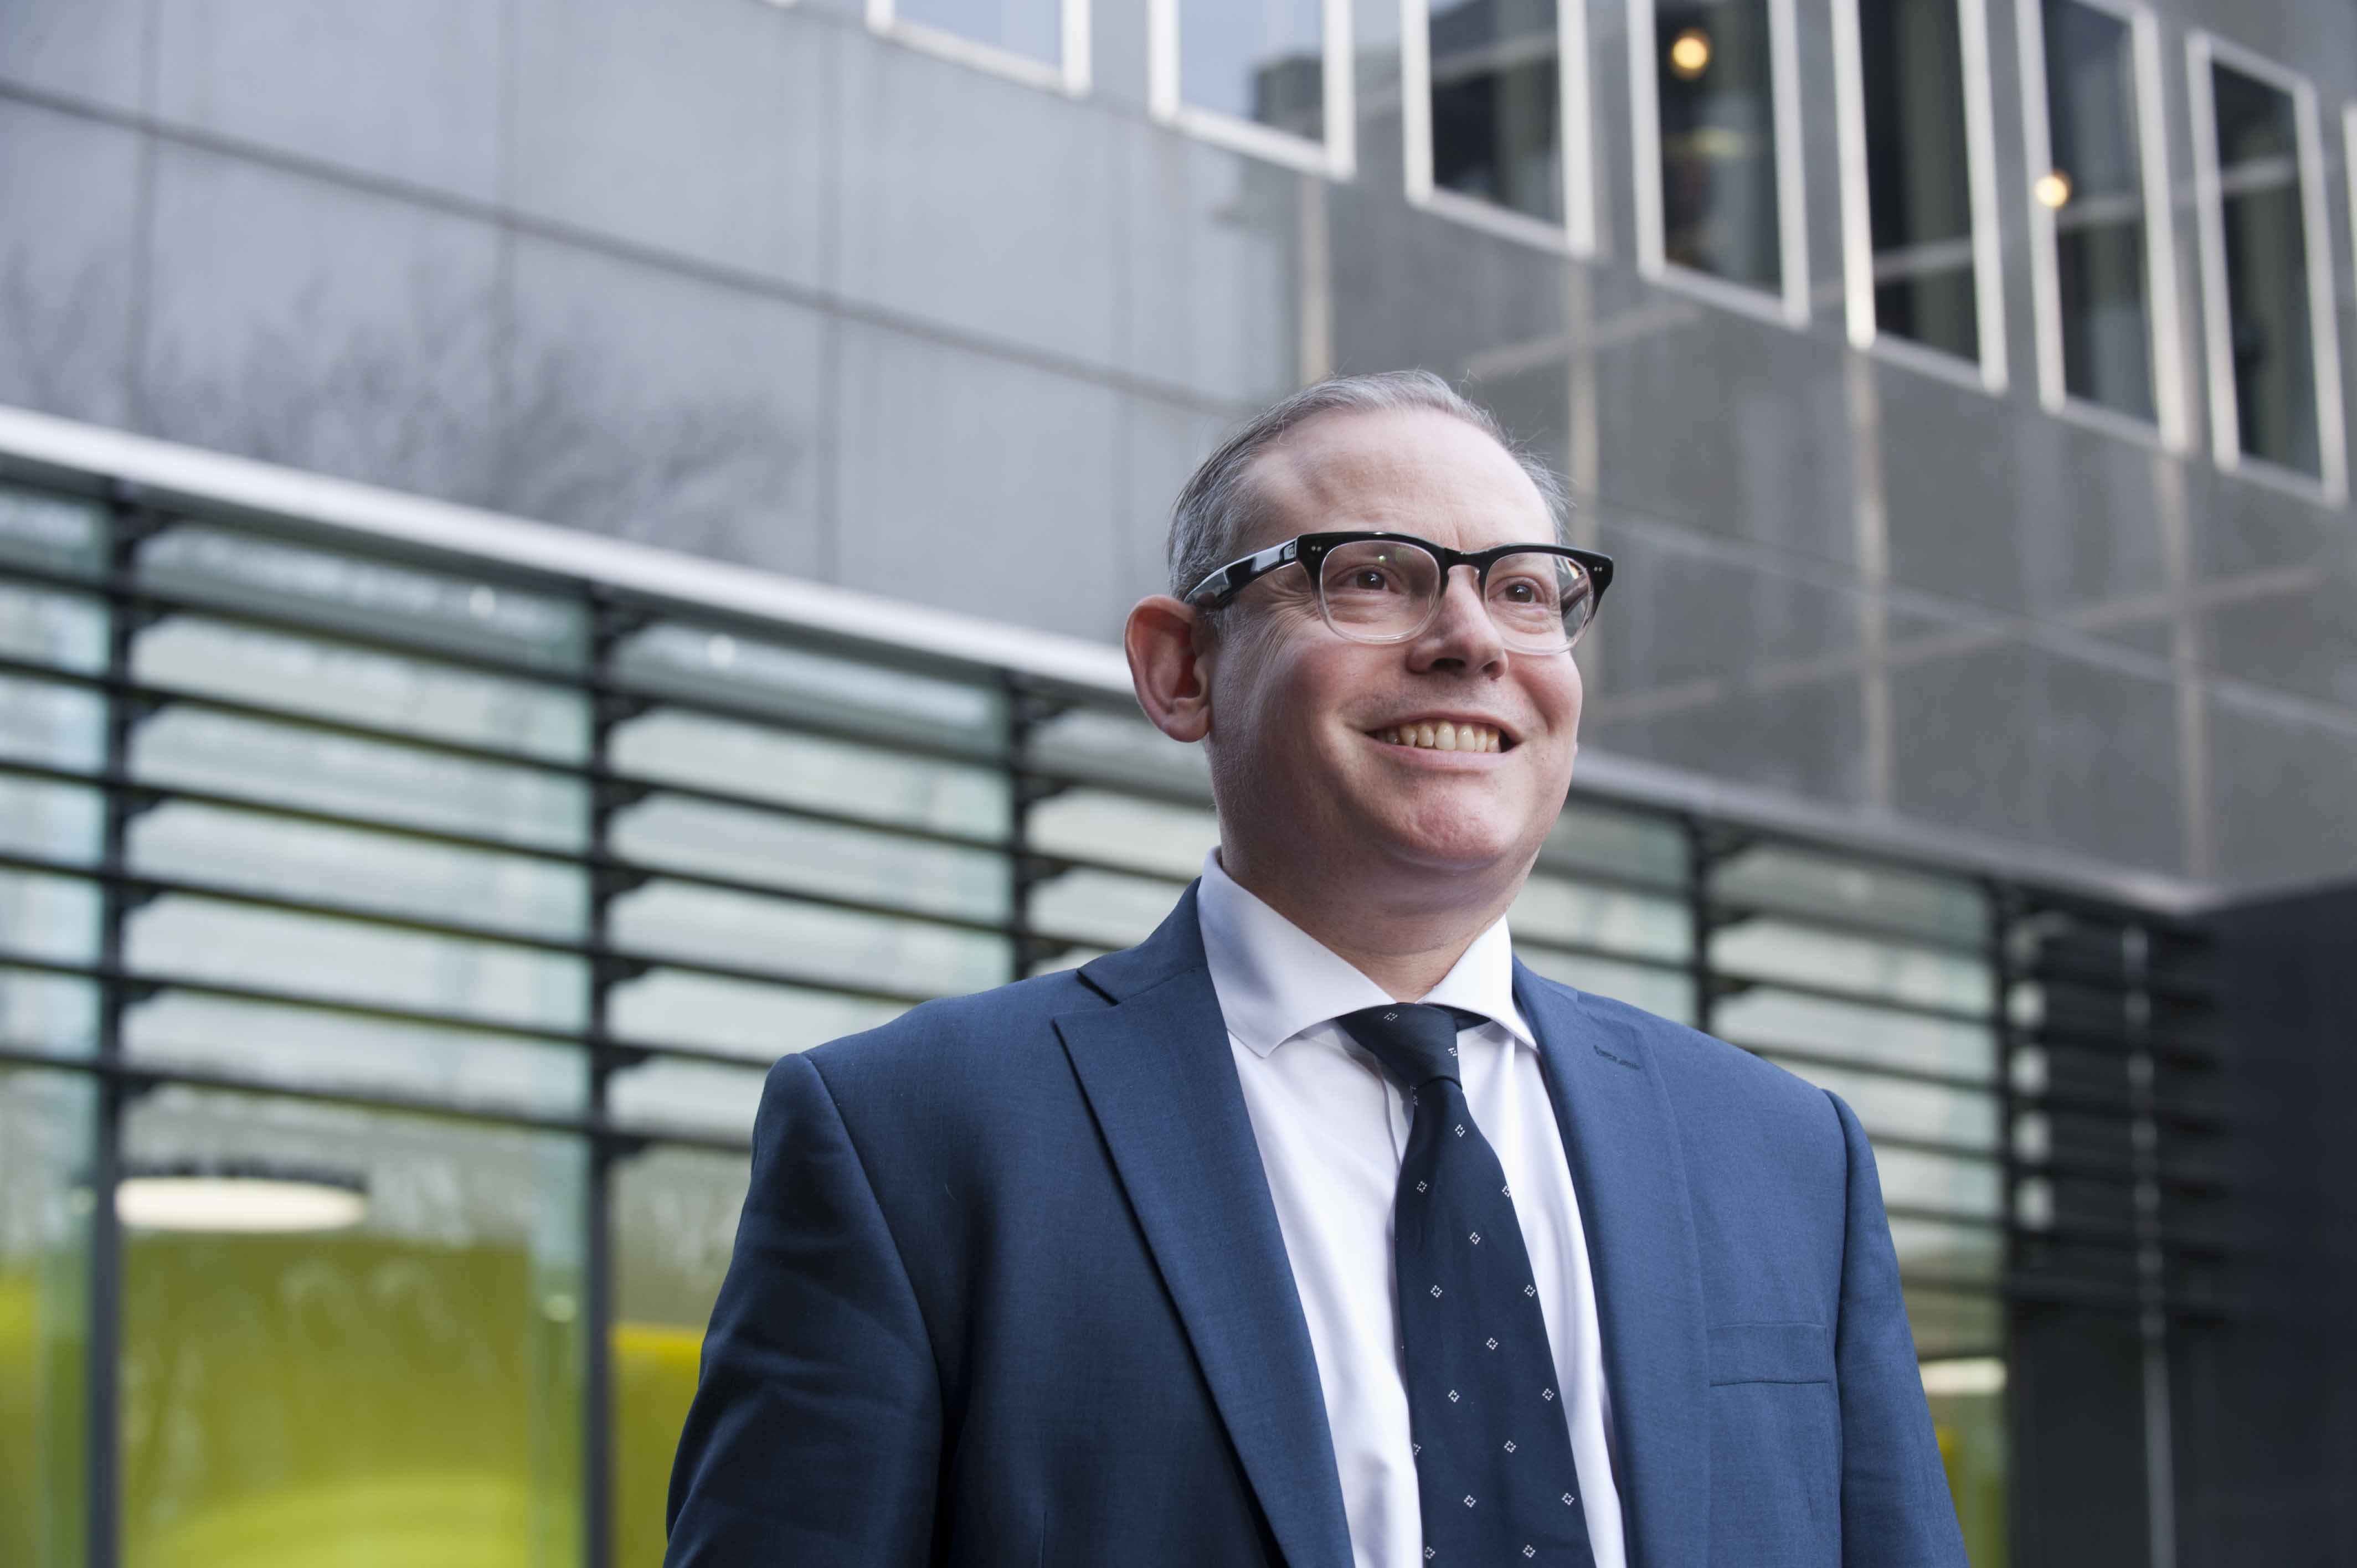 Uncertainty continues for East Midlands businesses as Brexit outcome remains unclear